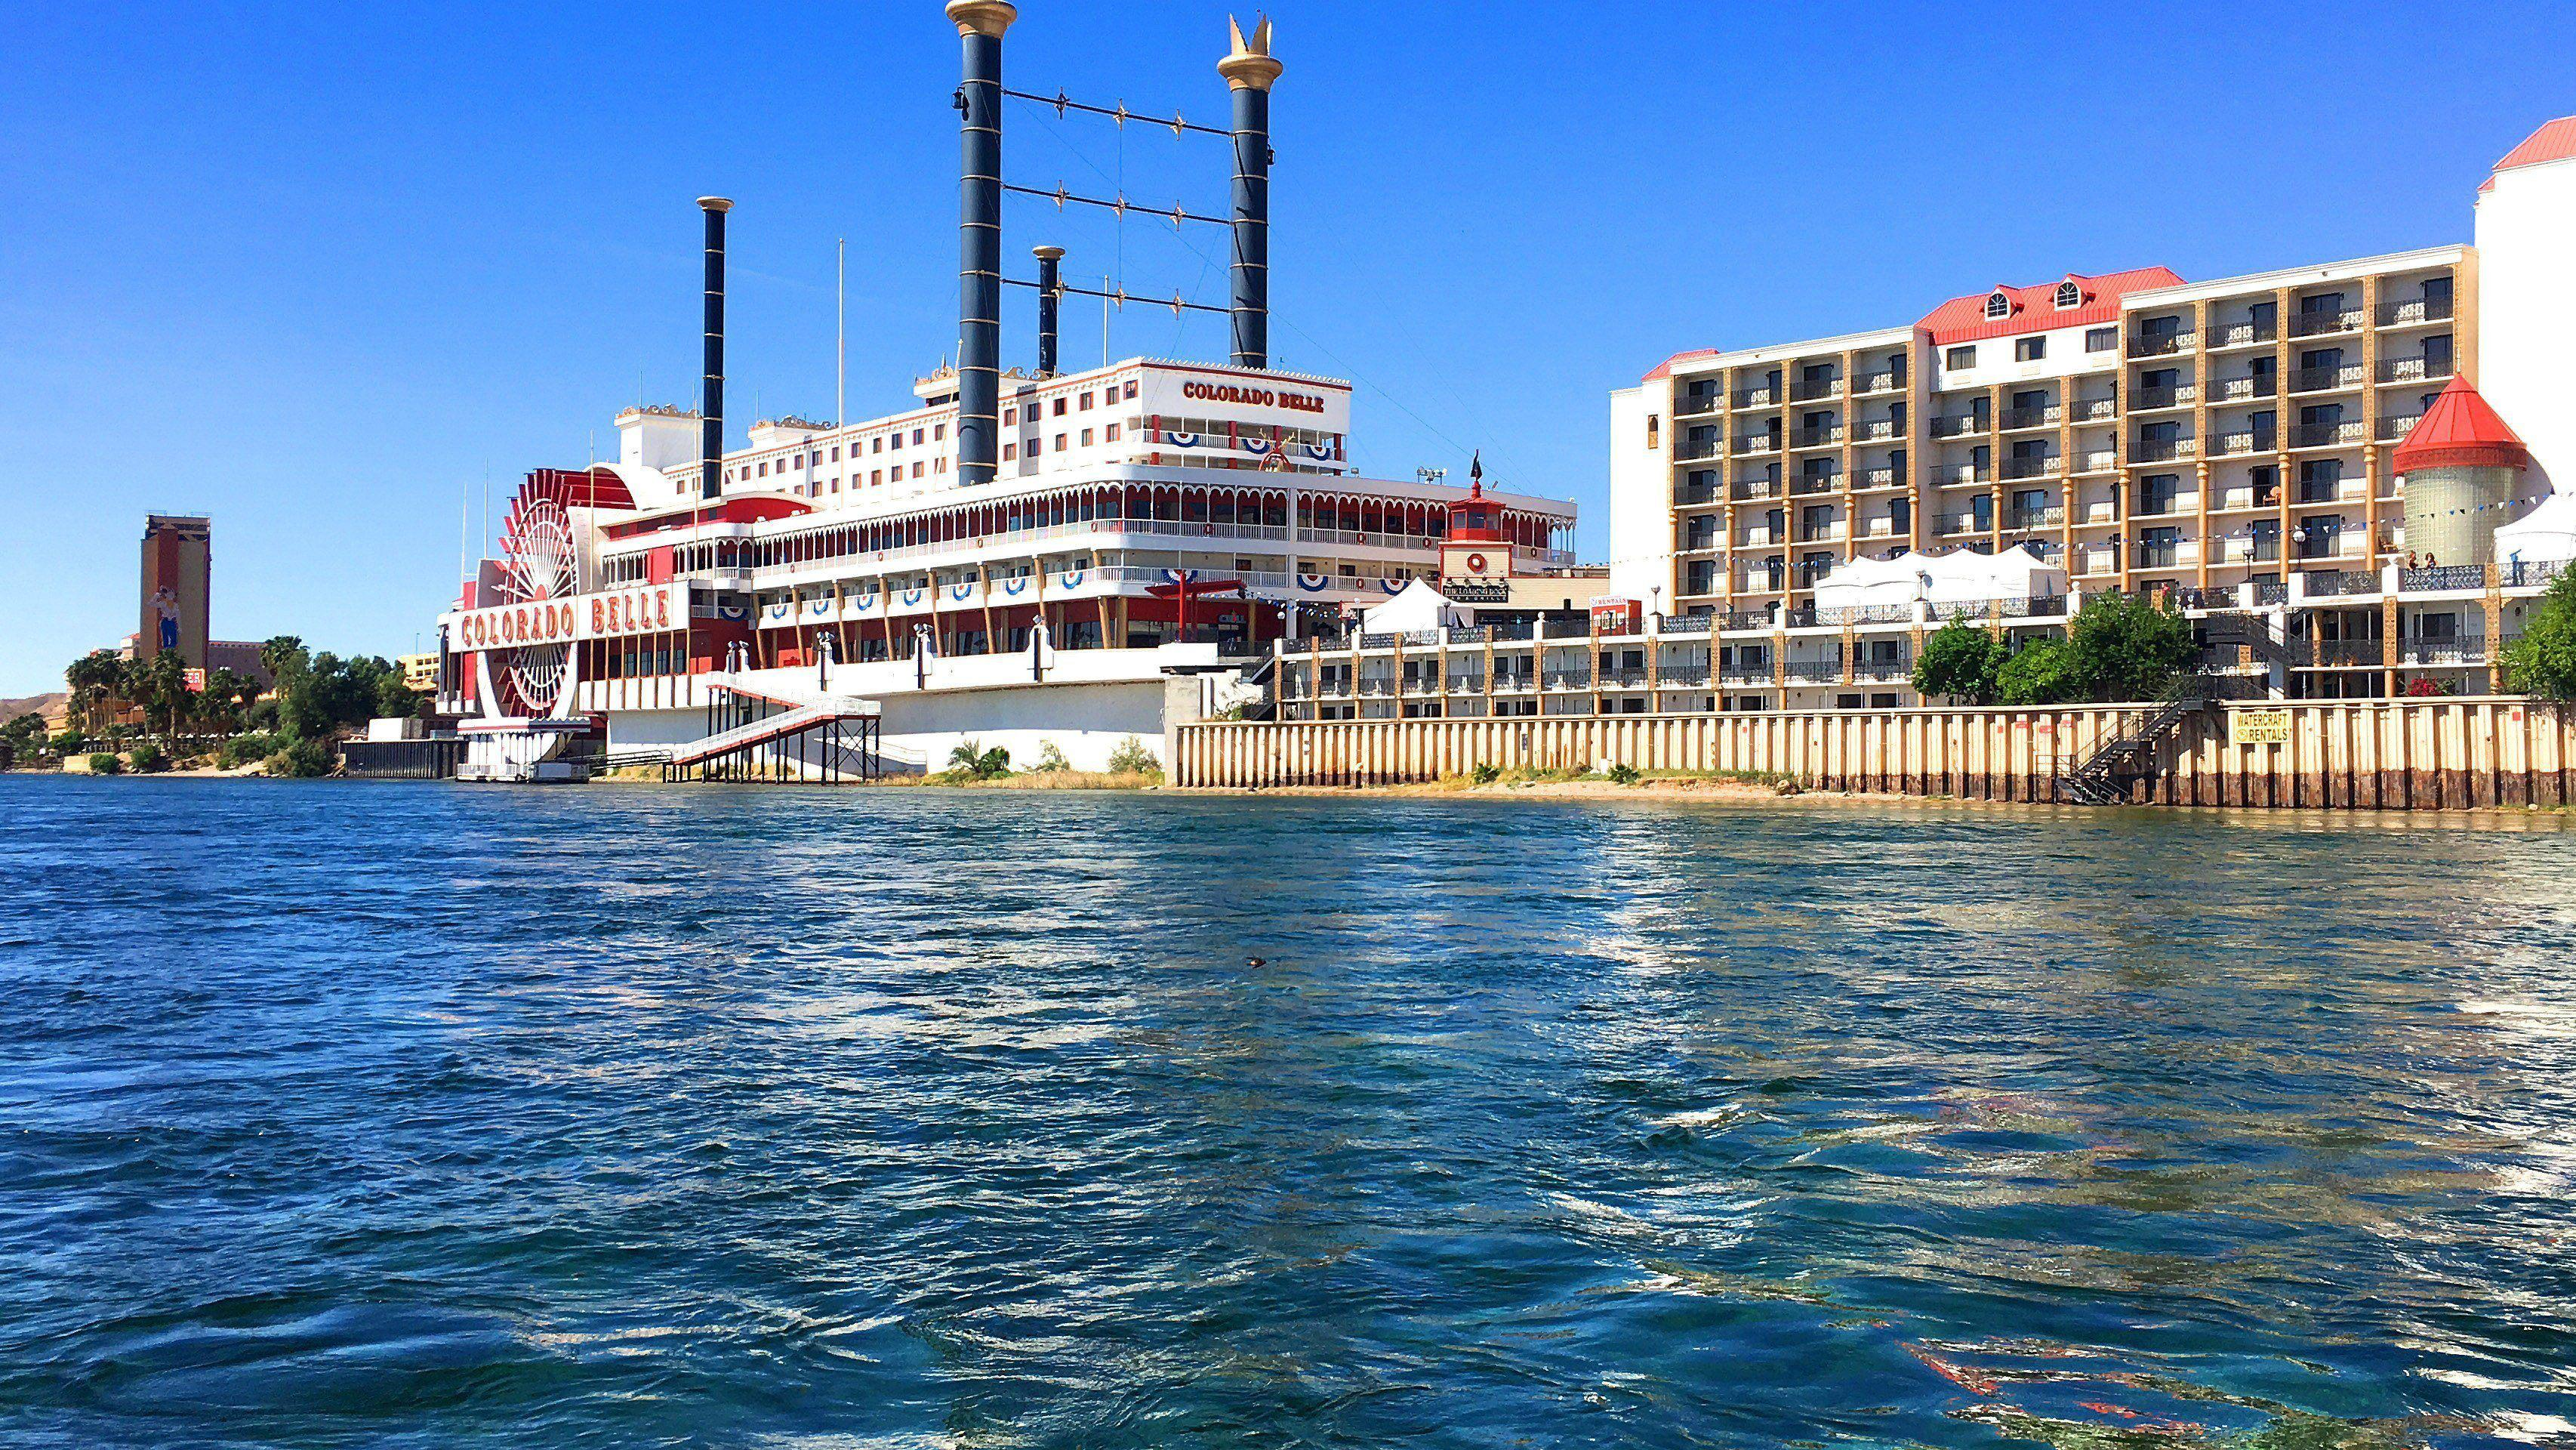 Laughlin, Nevada: An Undiscovered Gem With Unexpected Charms